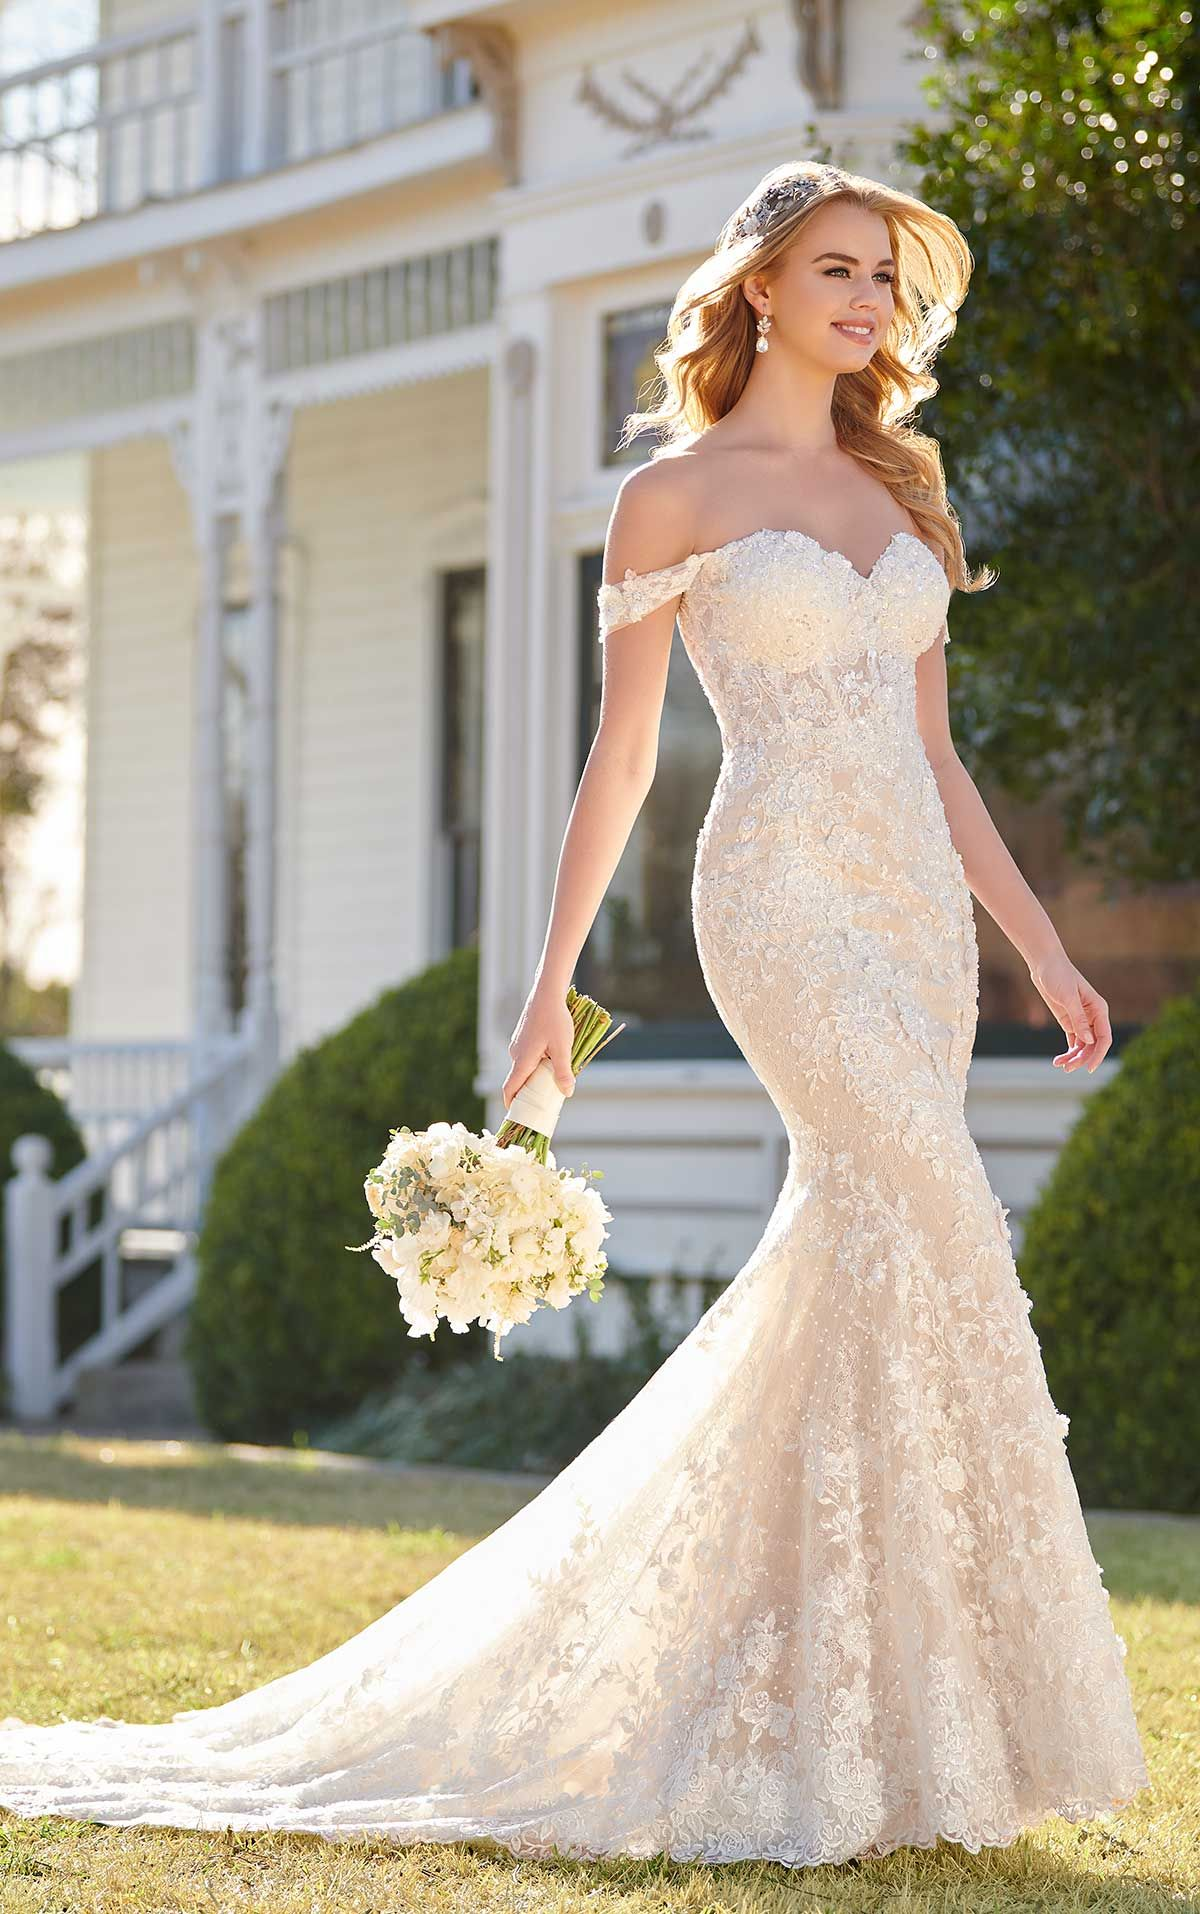 Wedding dress suit  Martina Liana   The dreamy lace throughout this Martina Liana